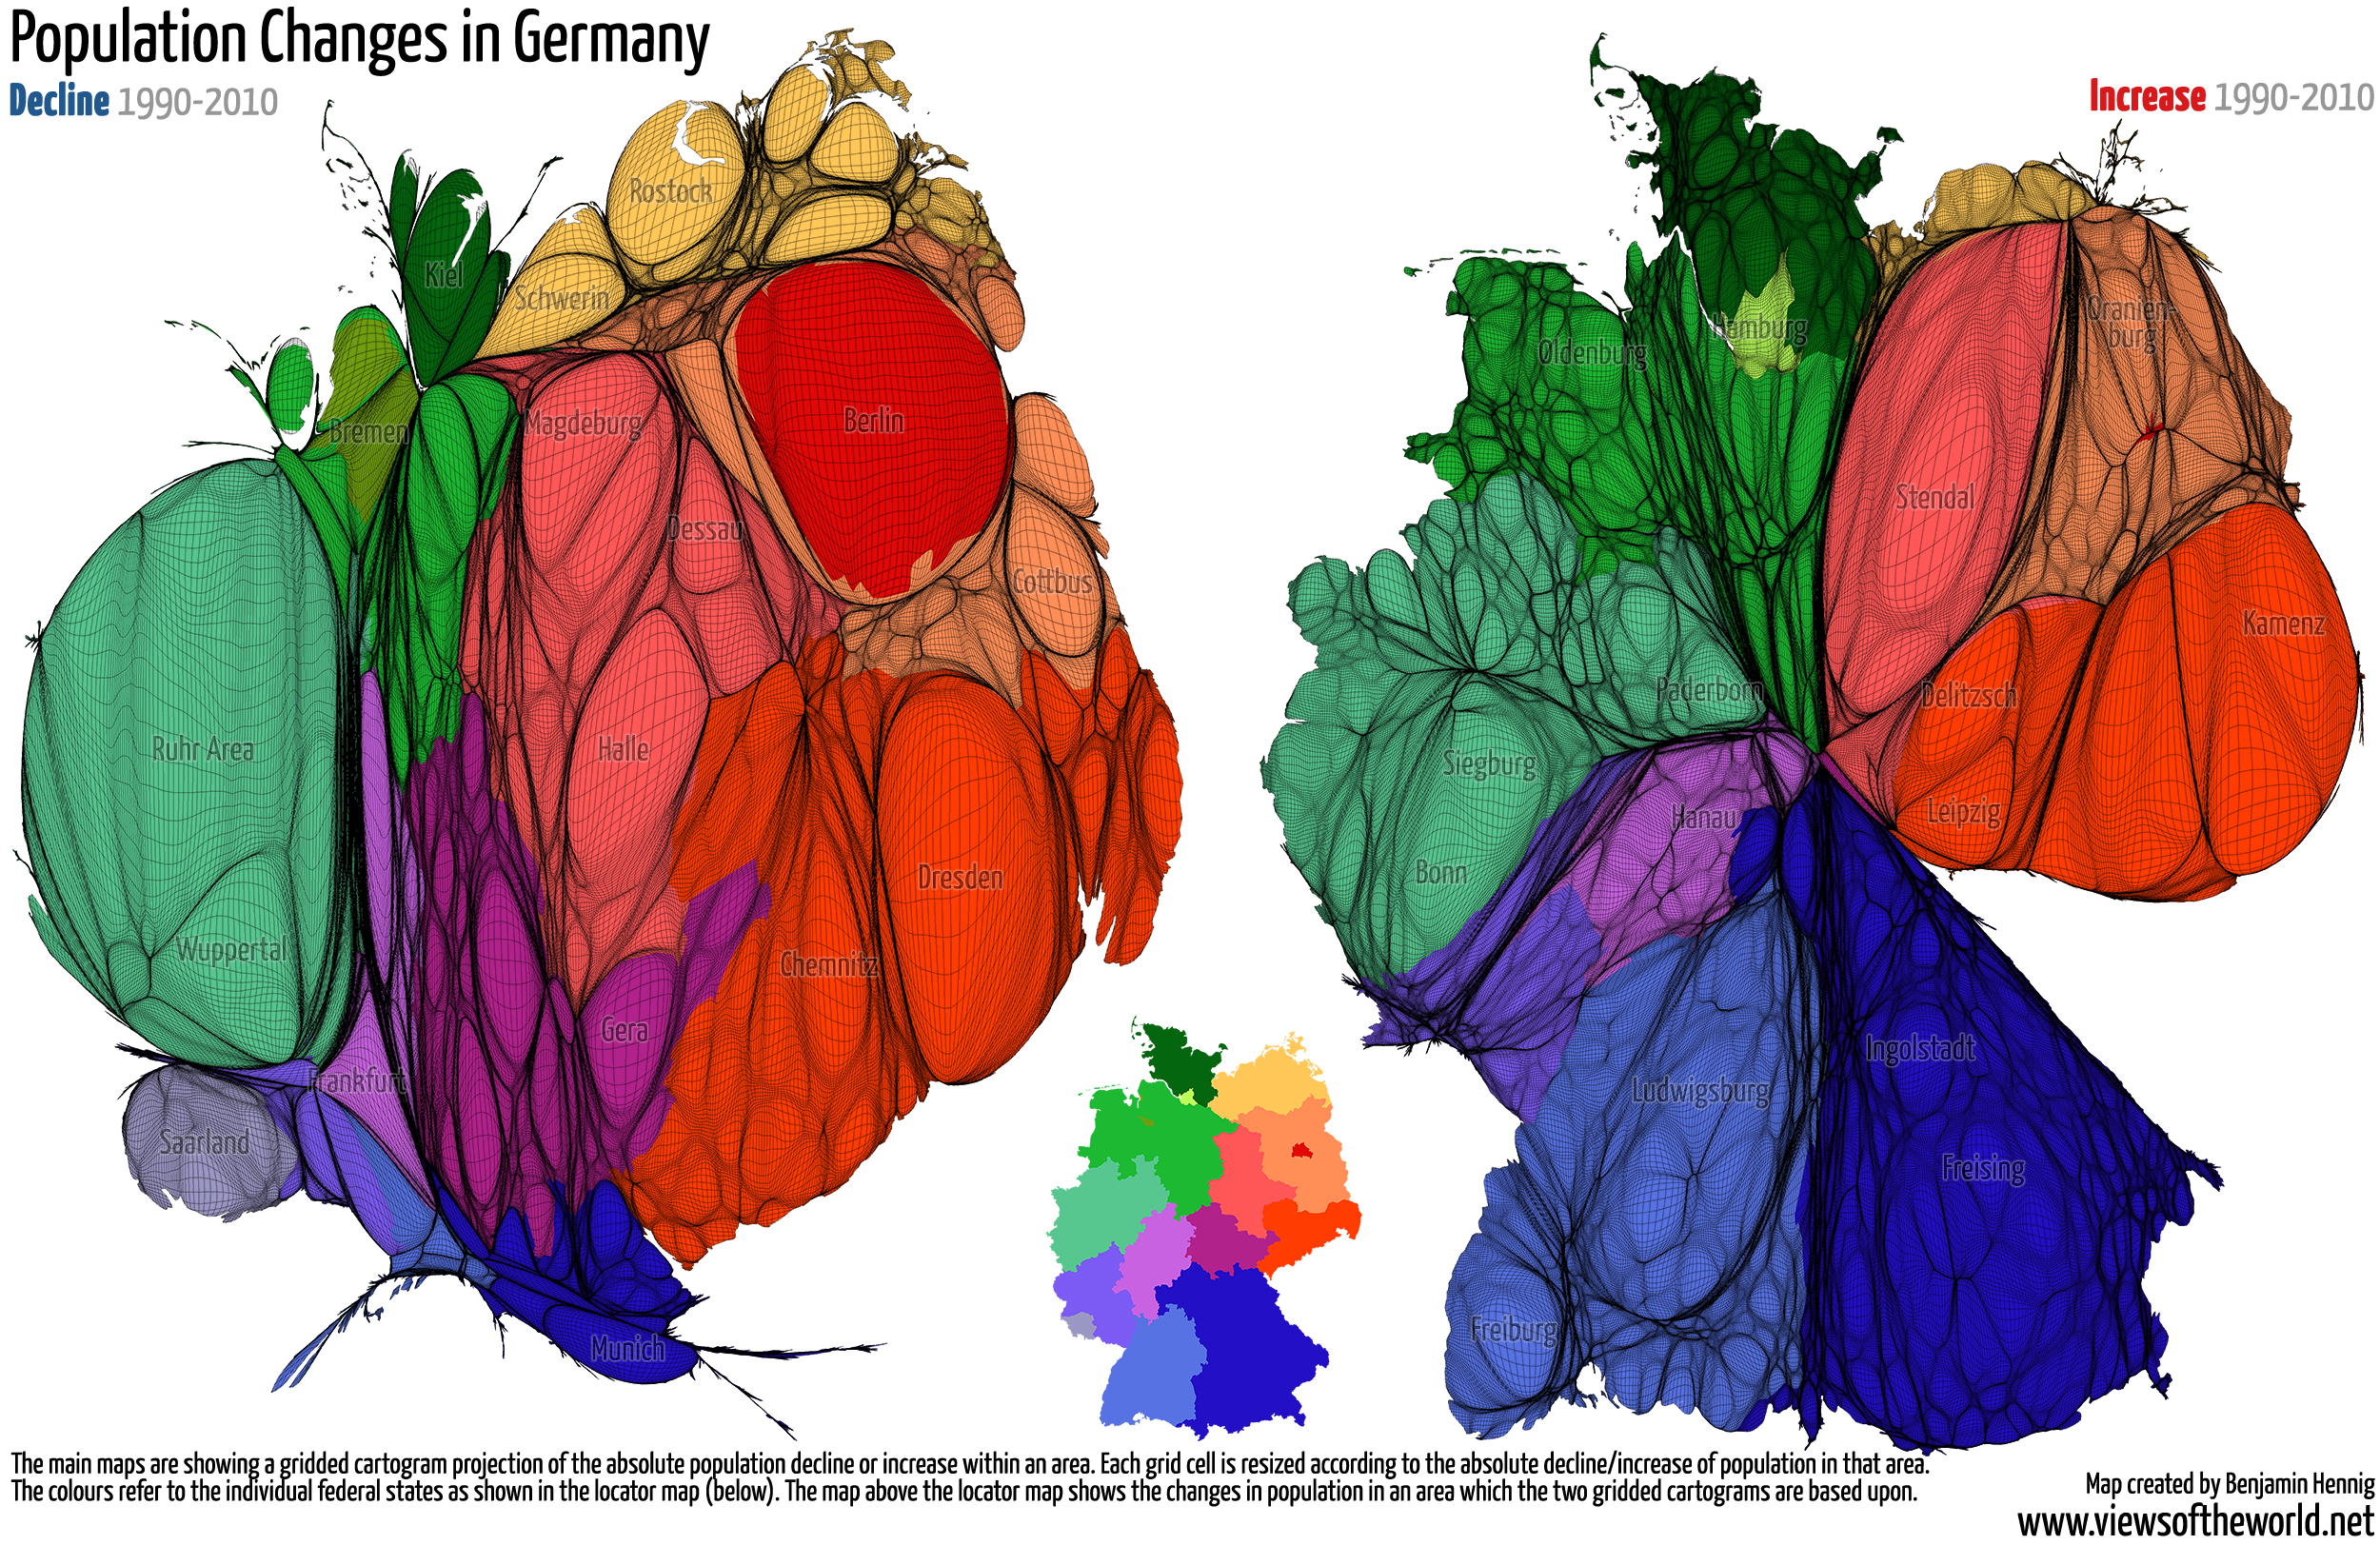 Cartograms of population changes in Germany between 1990 and 2010